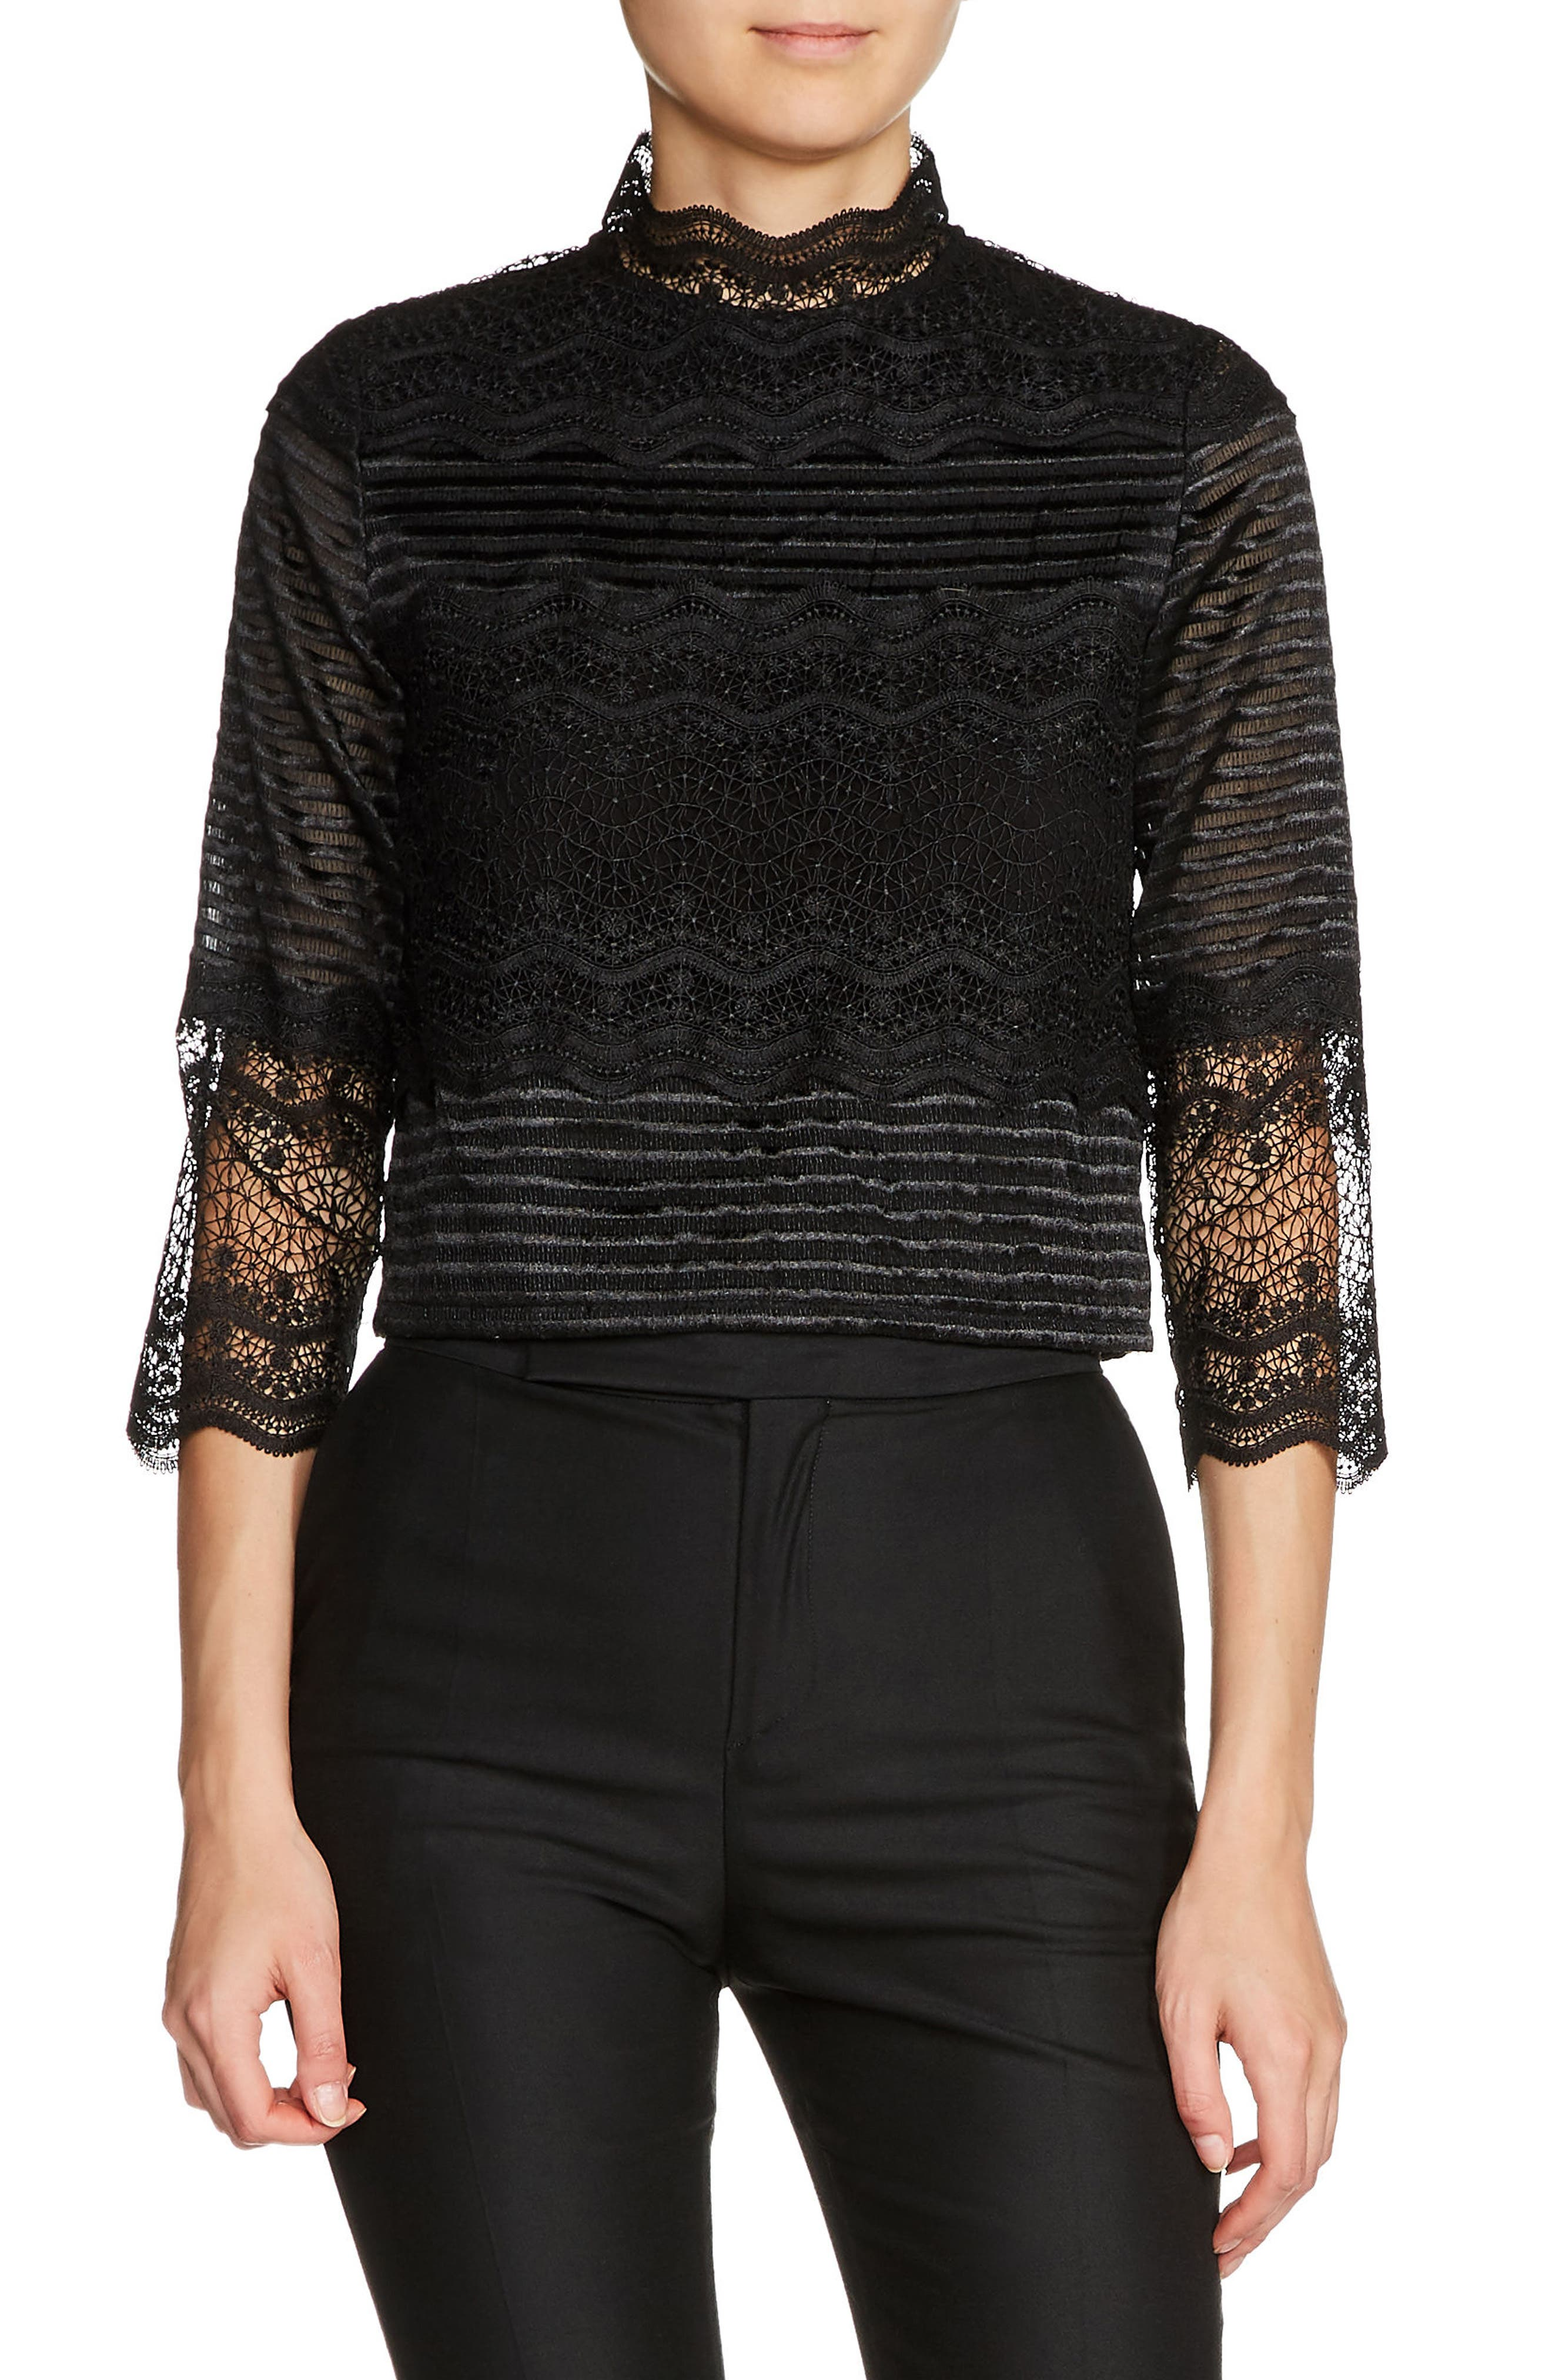 maje Lace & Embroidery Top